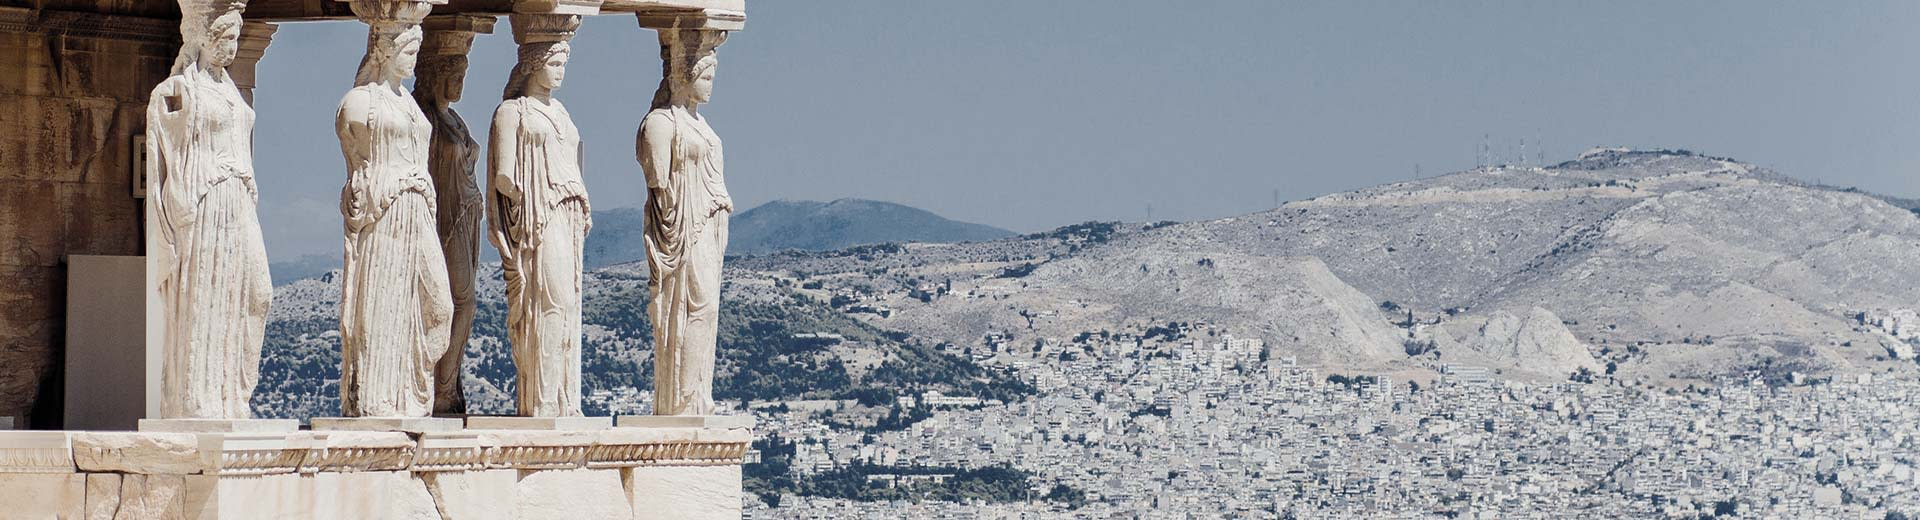 Caryatids of the Erechtheion in Athens with mountains in the background